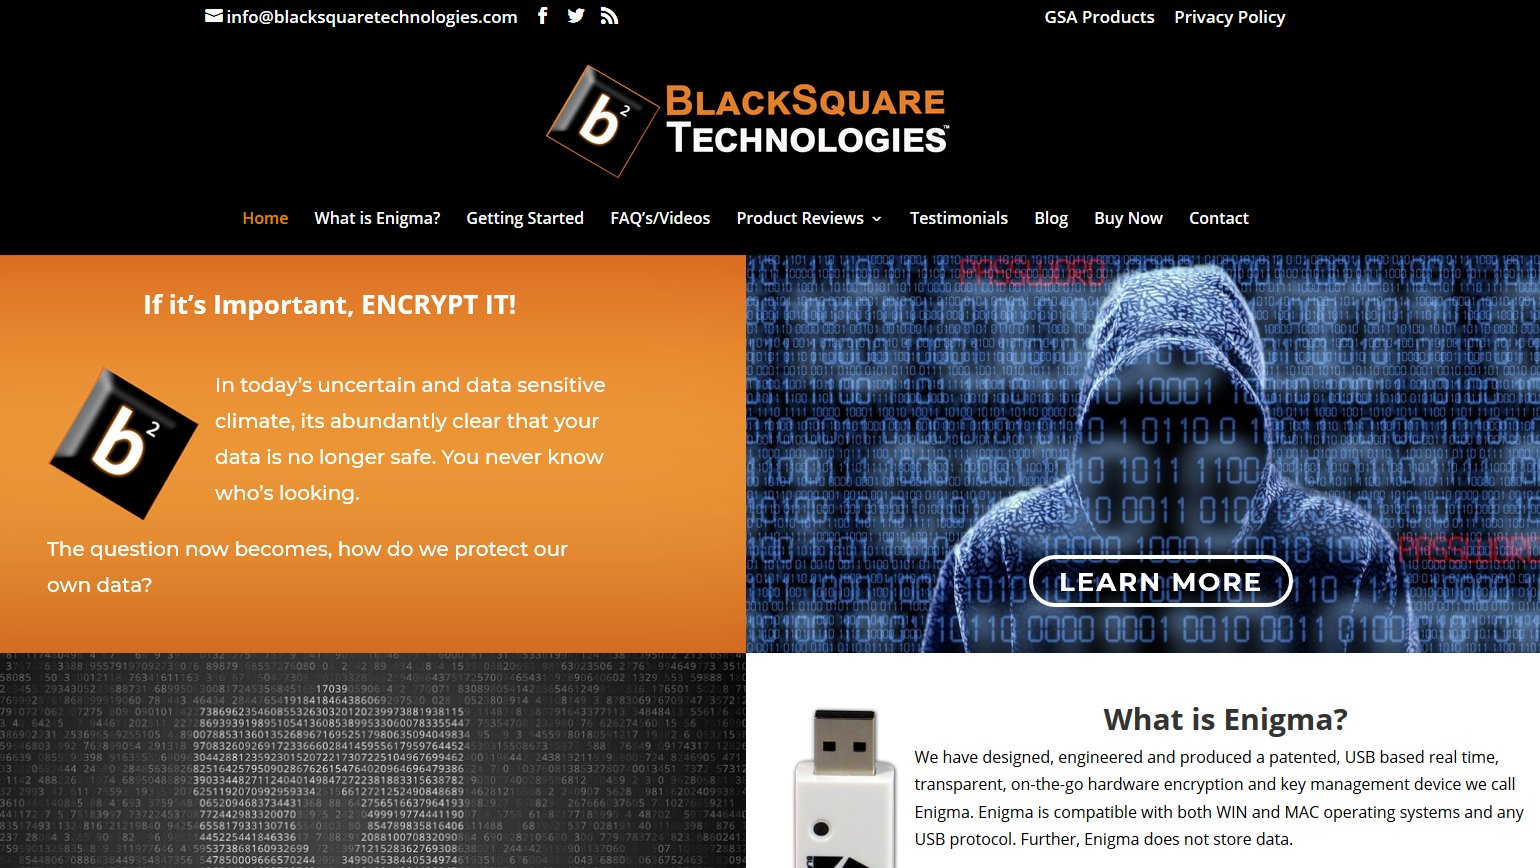 BlackSquare Technologies